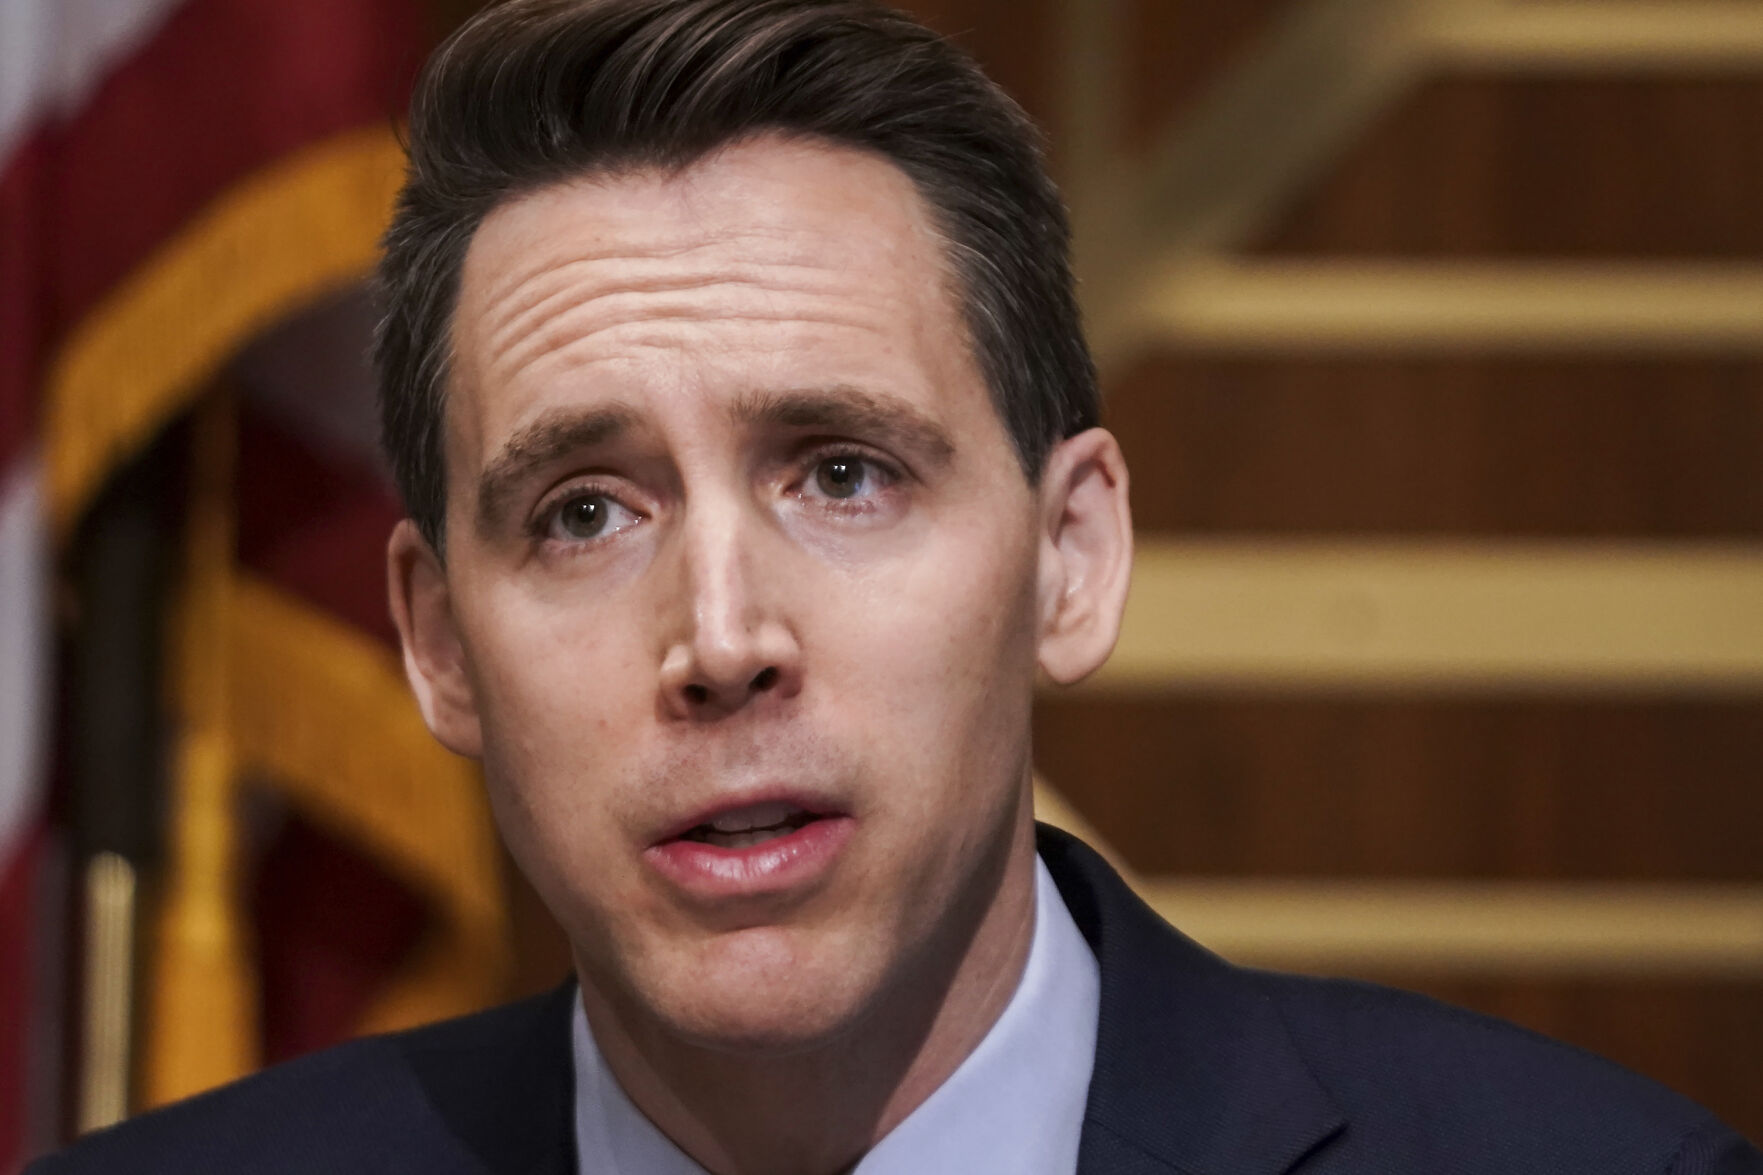 Missouri's Hawley lobbied for more, but federal aid should get to unemployed beginning next week